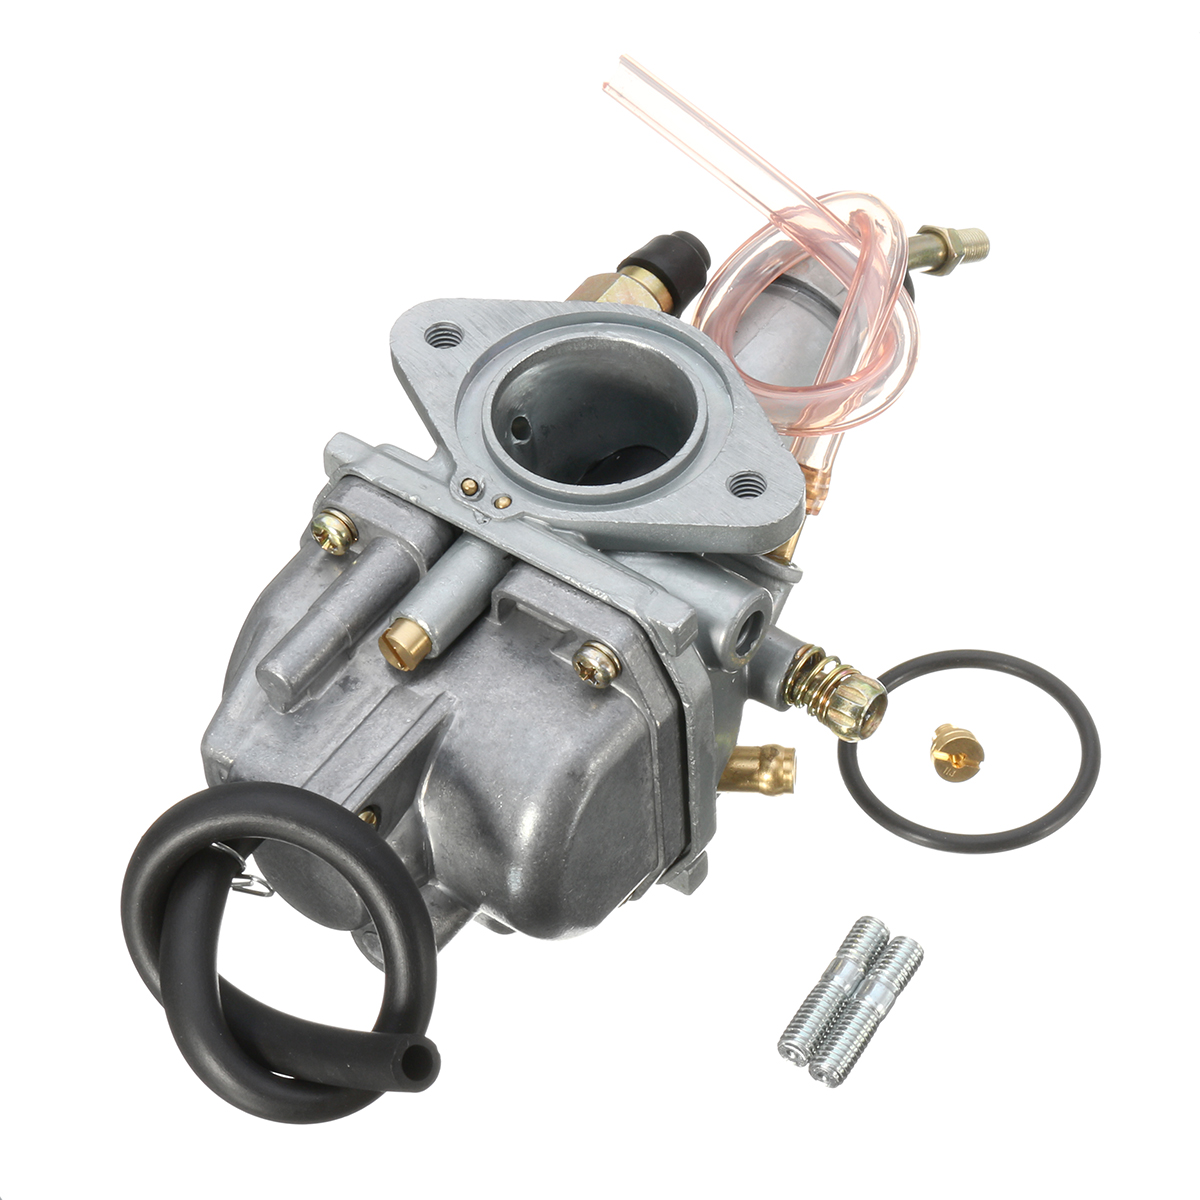 Carburetor Carb For YAMAHA BREEZE 125 /YFA125 1989-2004 Dirt Bike Aluminum